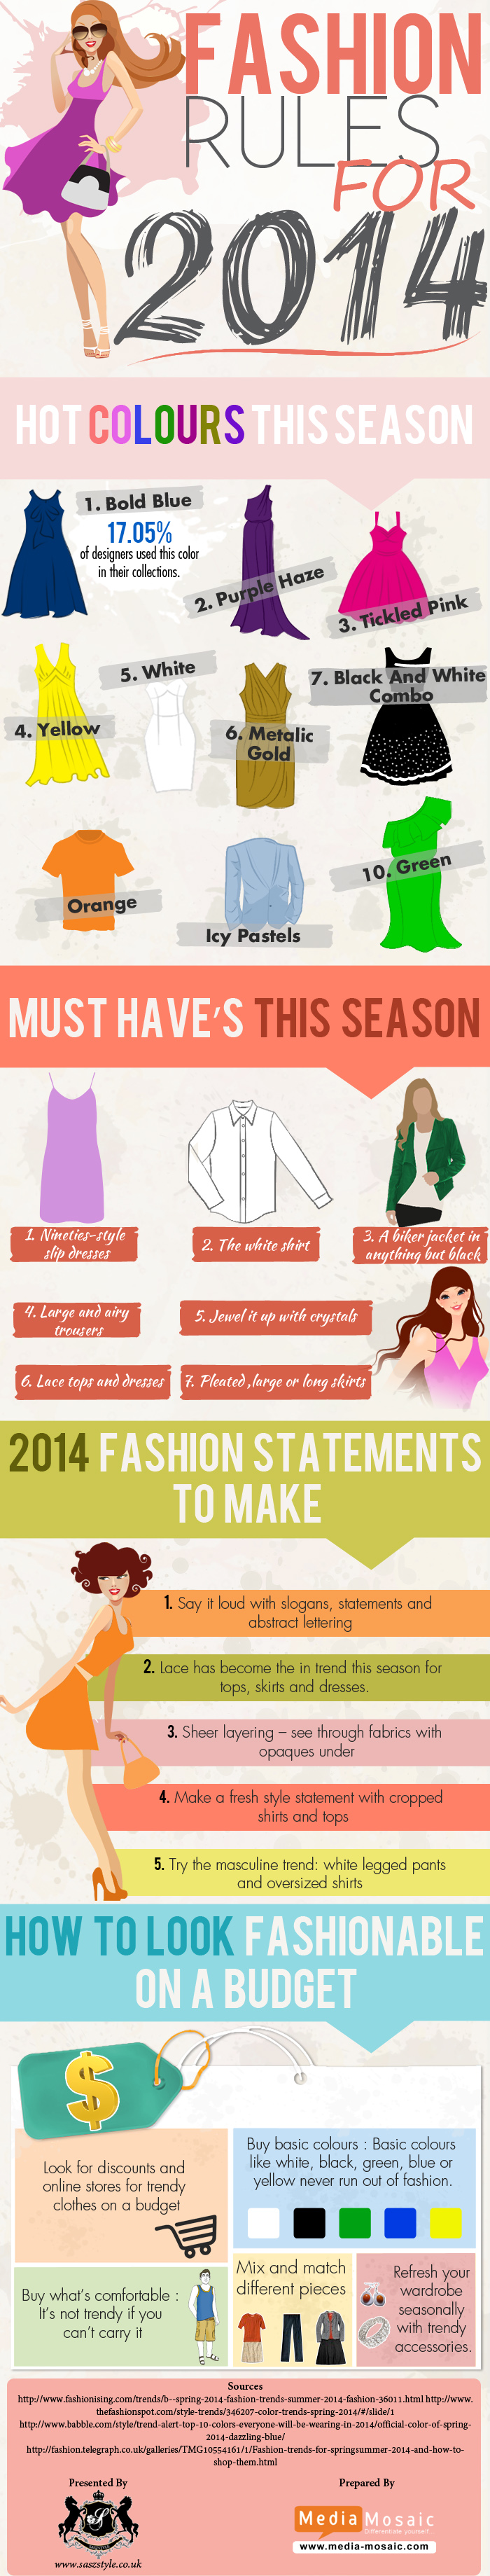 Fashion Rules For 2014